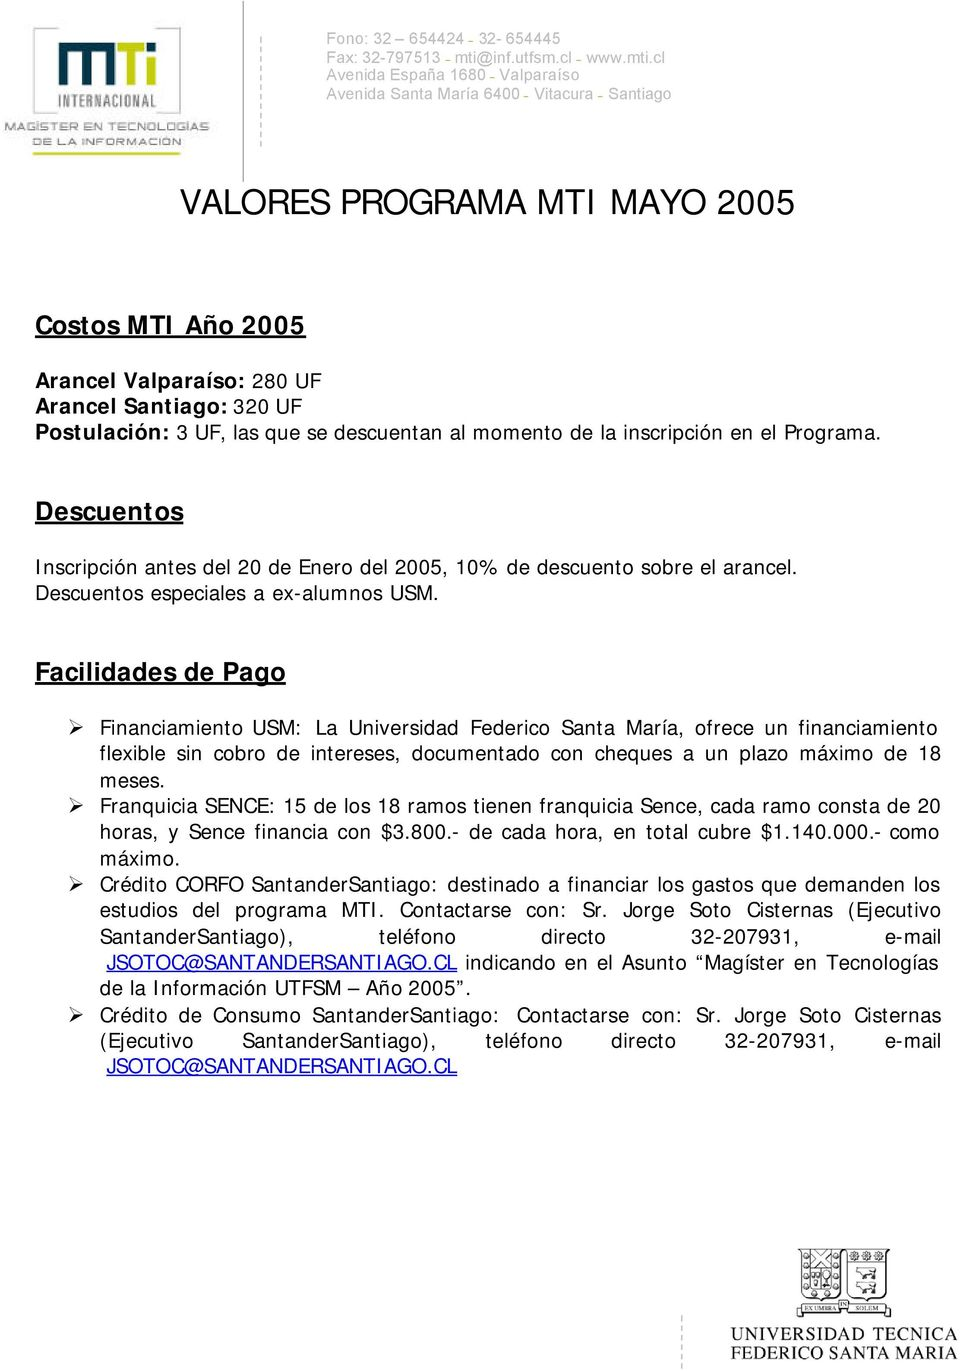 Facilidades de Pago Financiamiento USM: La Universidad Federico Santa María, ofrece un financiamiento flexible sin cobro de intereses, documentado con cheques a un plazo máximo de 18 meses.